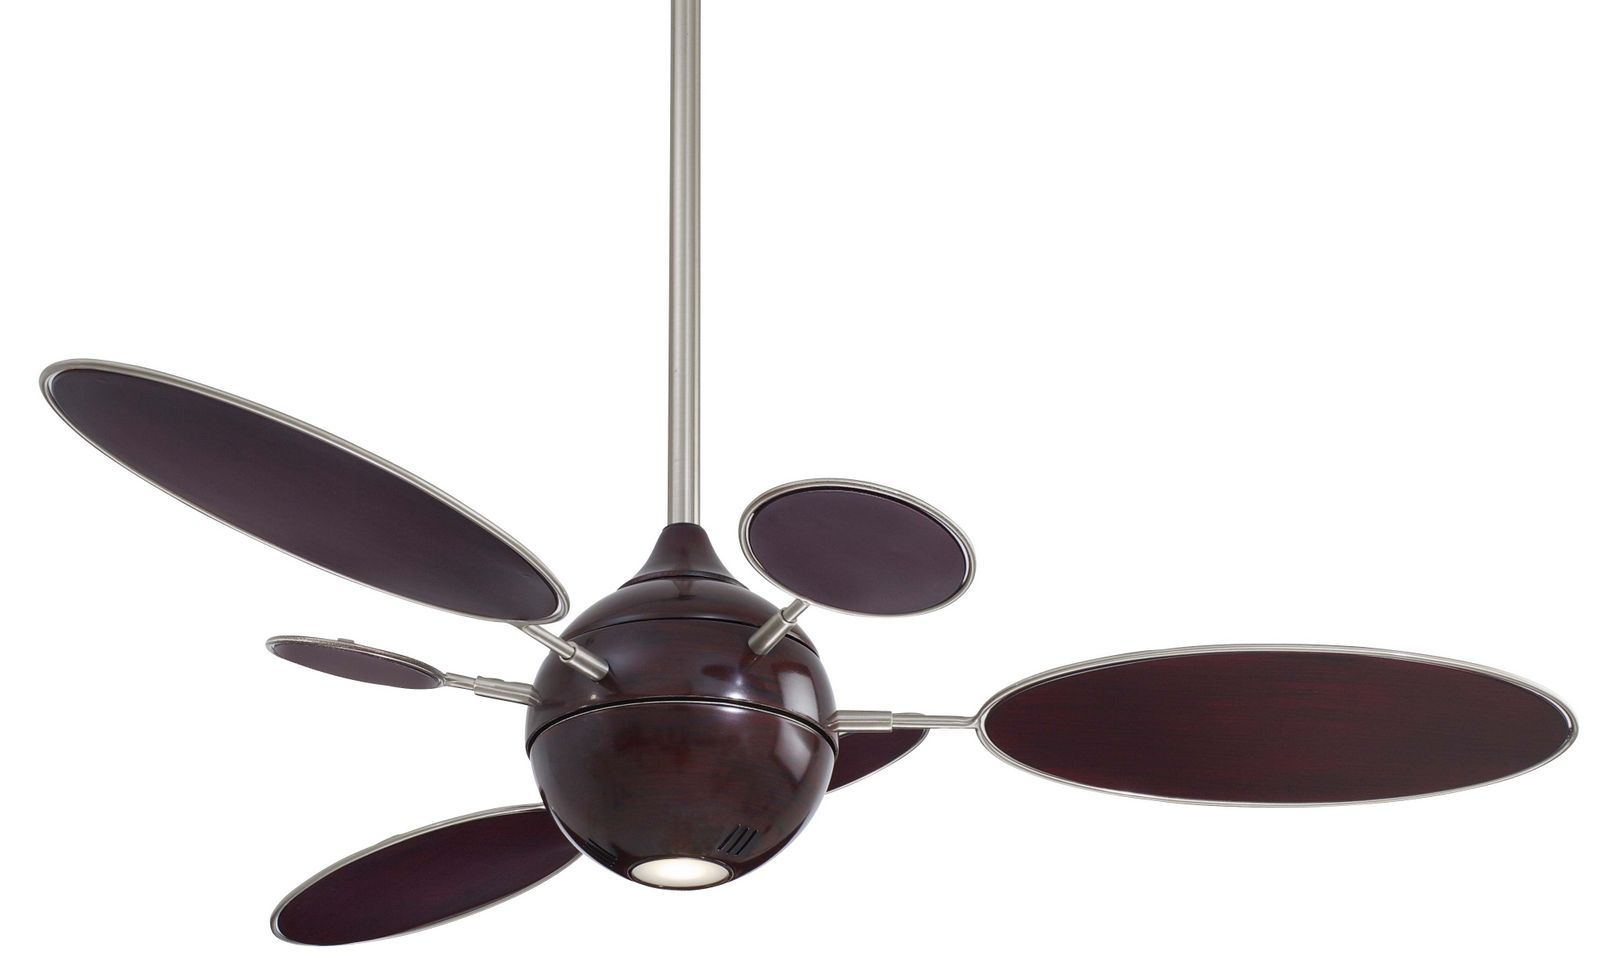 Room Design Ceiling Fans Stainless Steel With Classical Unique Fans And Colour Center Below Handle Completed With Ceiling Fan Ceiling Fan With Light Fan Light